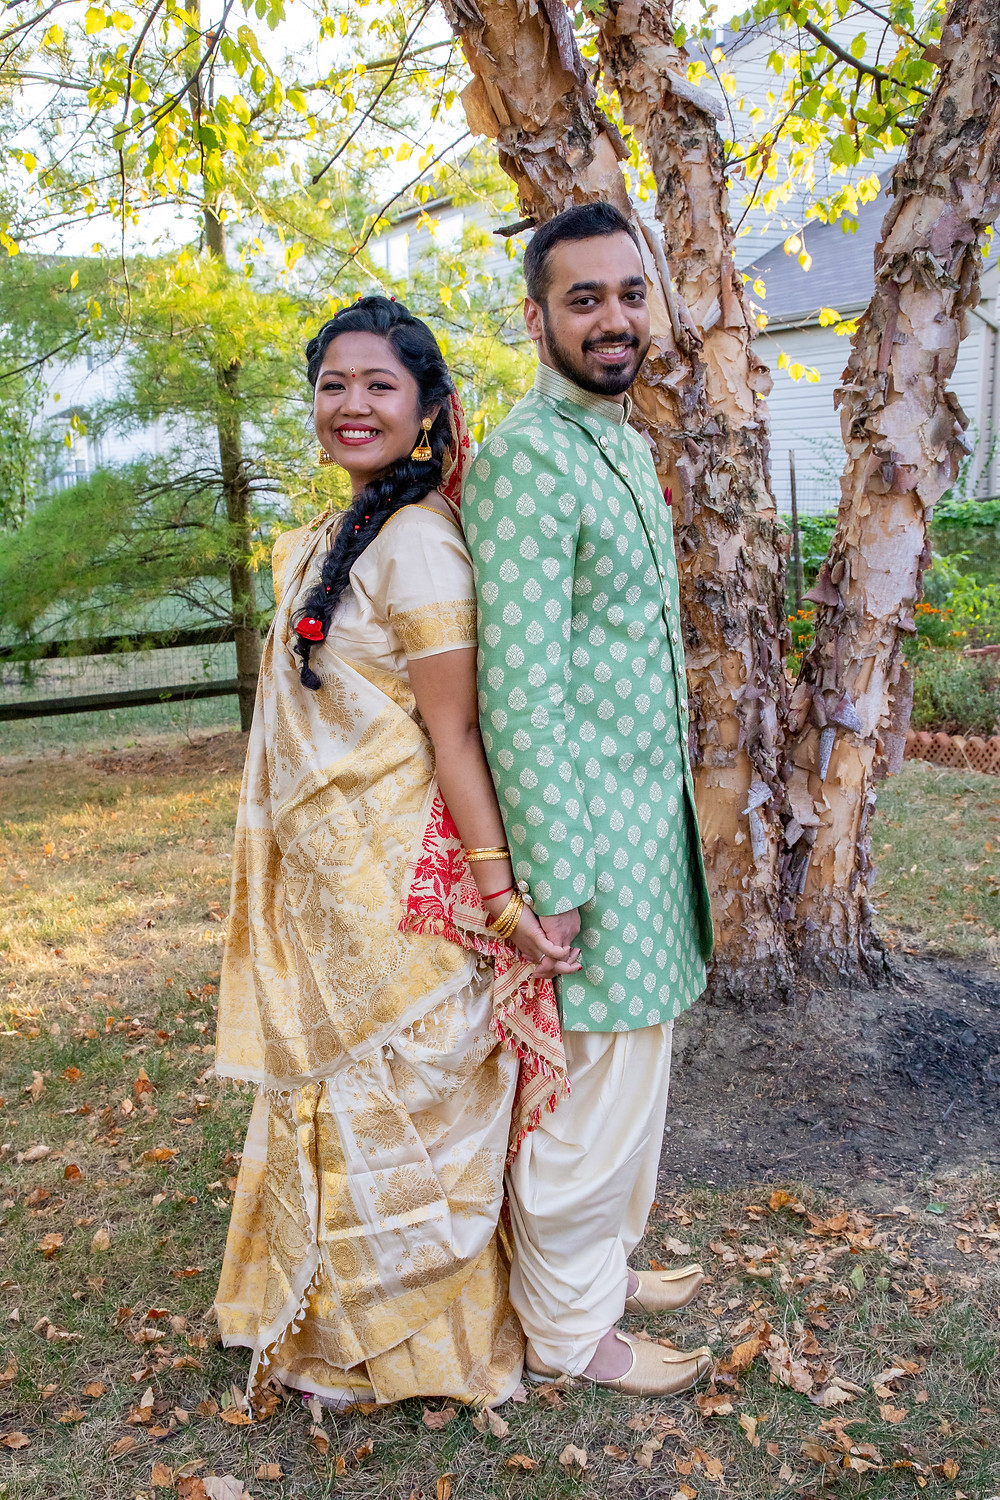 Indian wedding photographer captures image of indian husband and wife facing backwards of each other smiling for a picture holding hands.